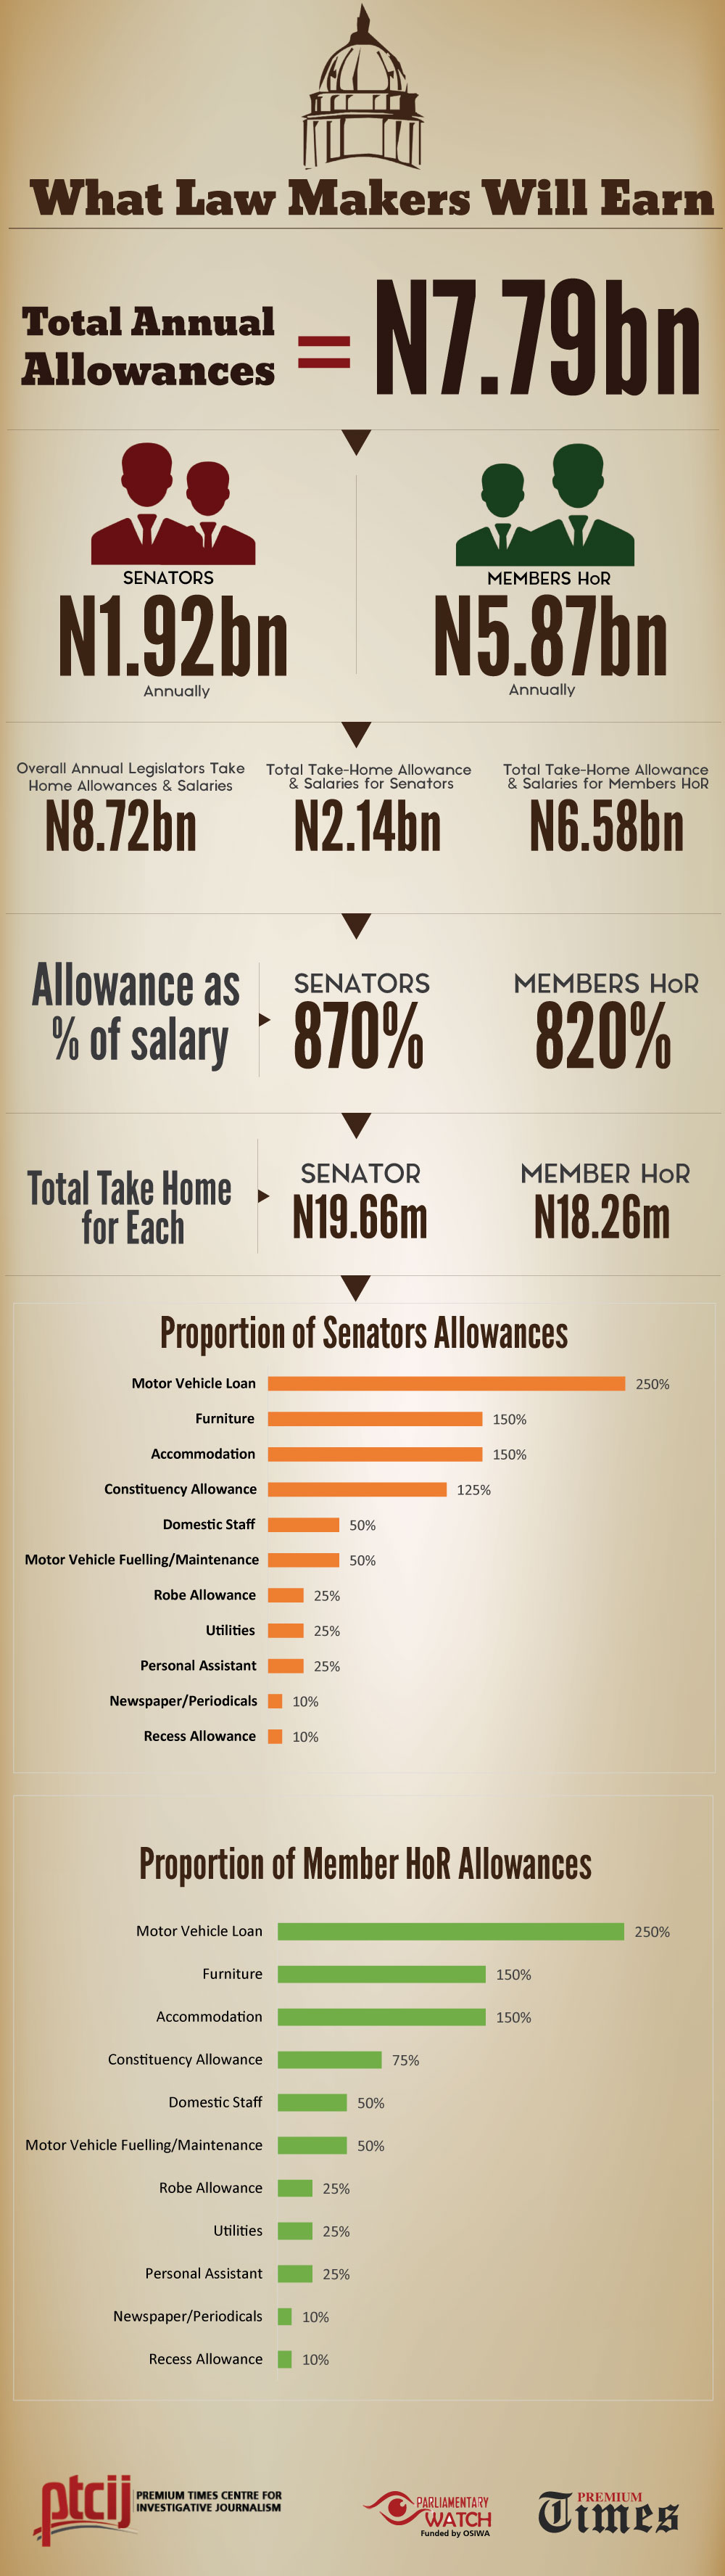 What-Lawmakers-will-Earn-8